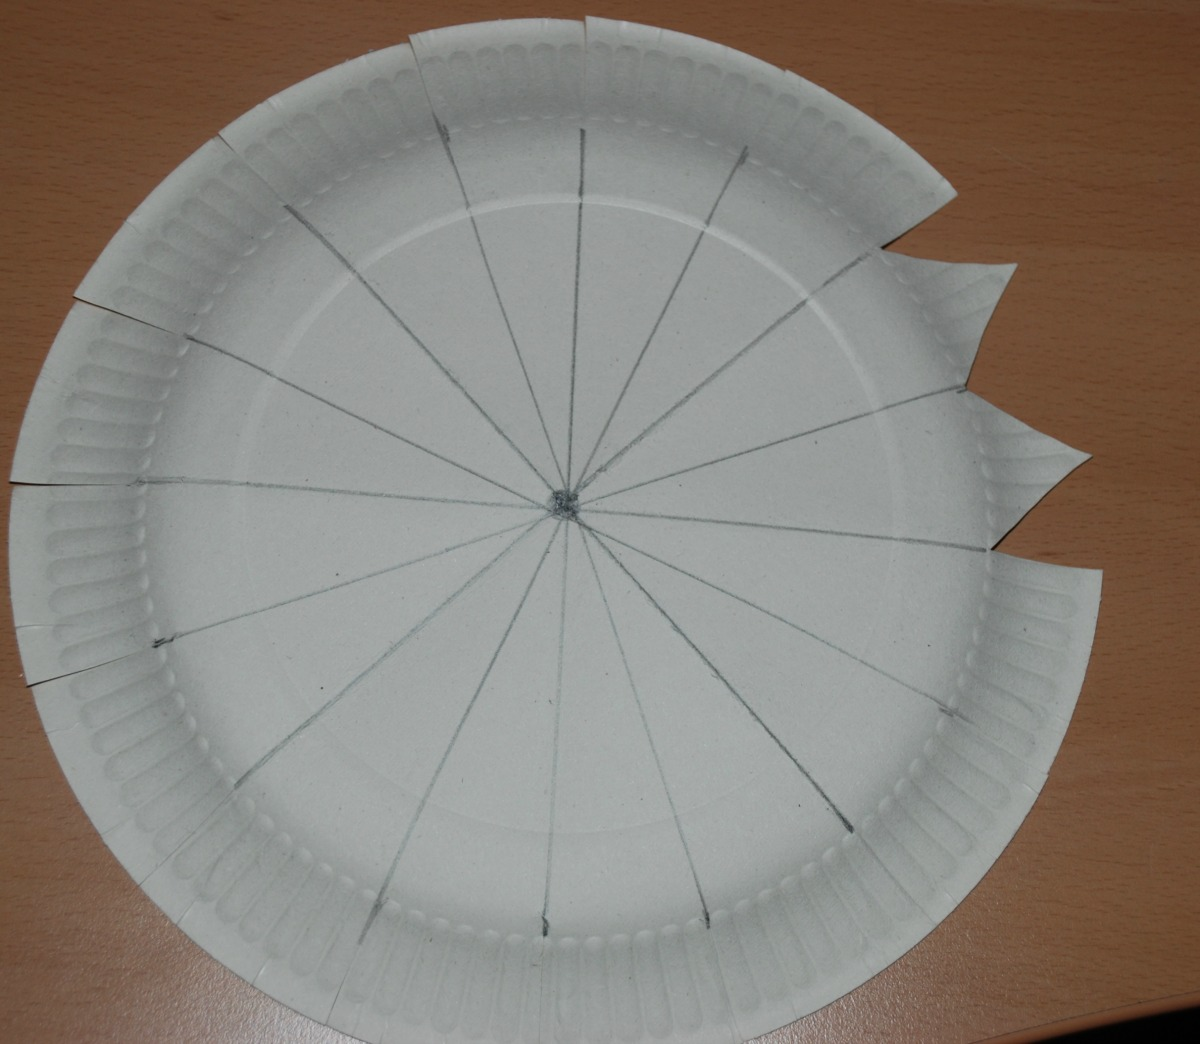 weaving & Paper Plate weaving | ofamily learning together